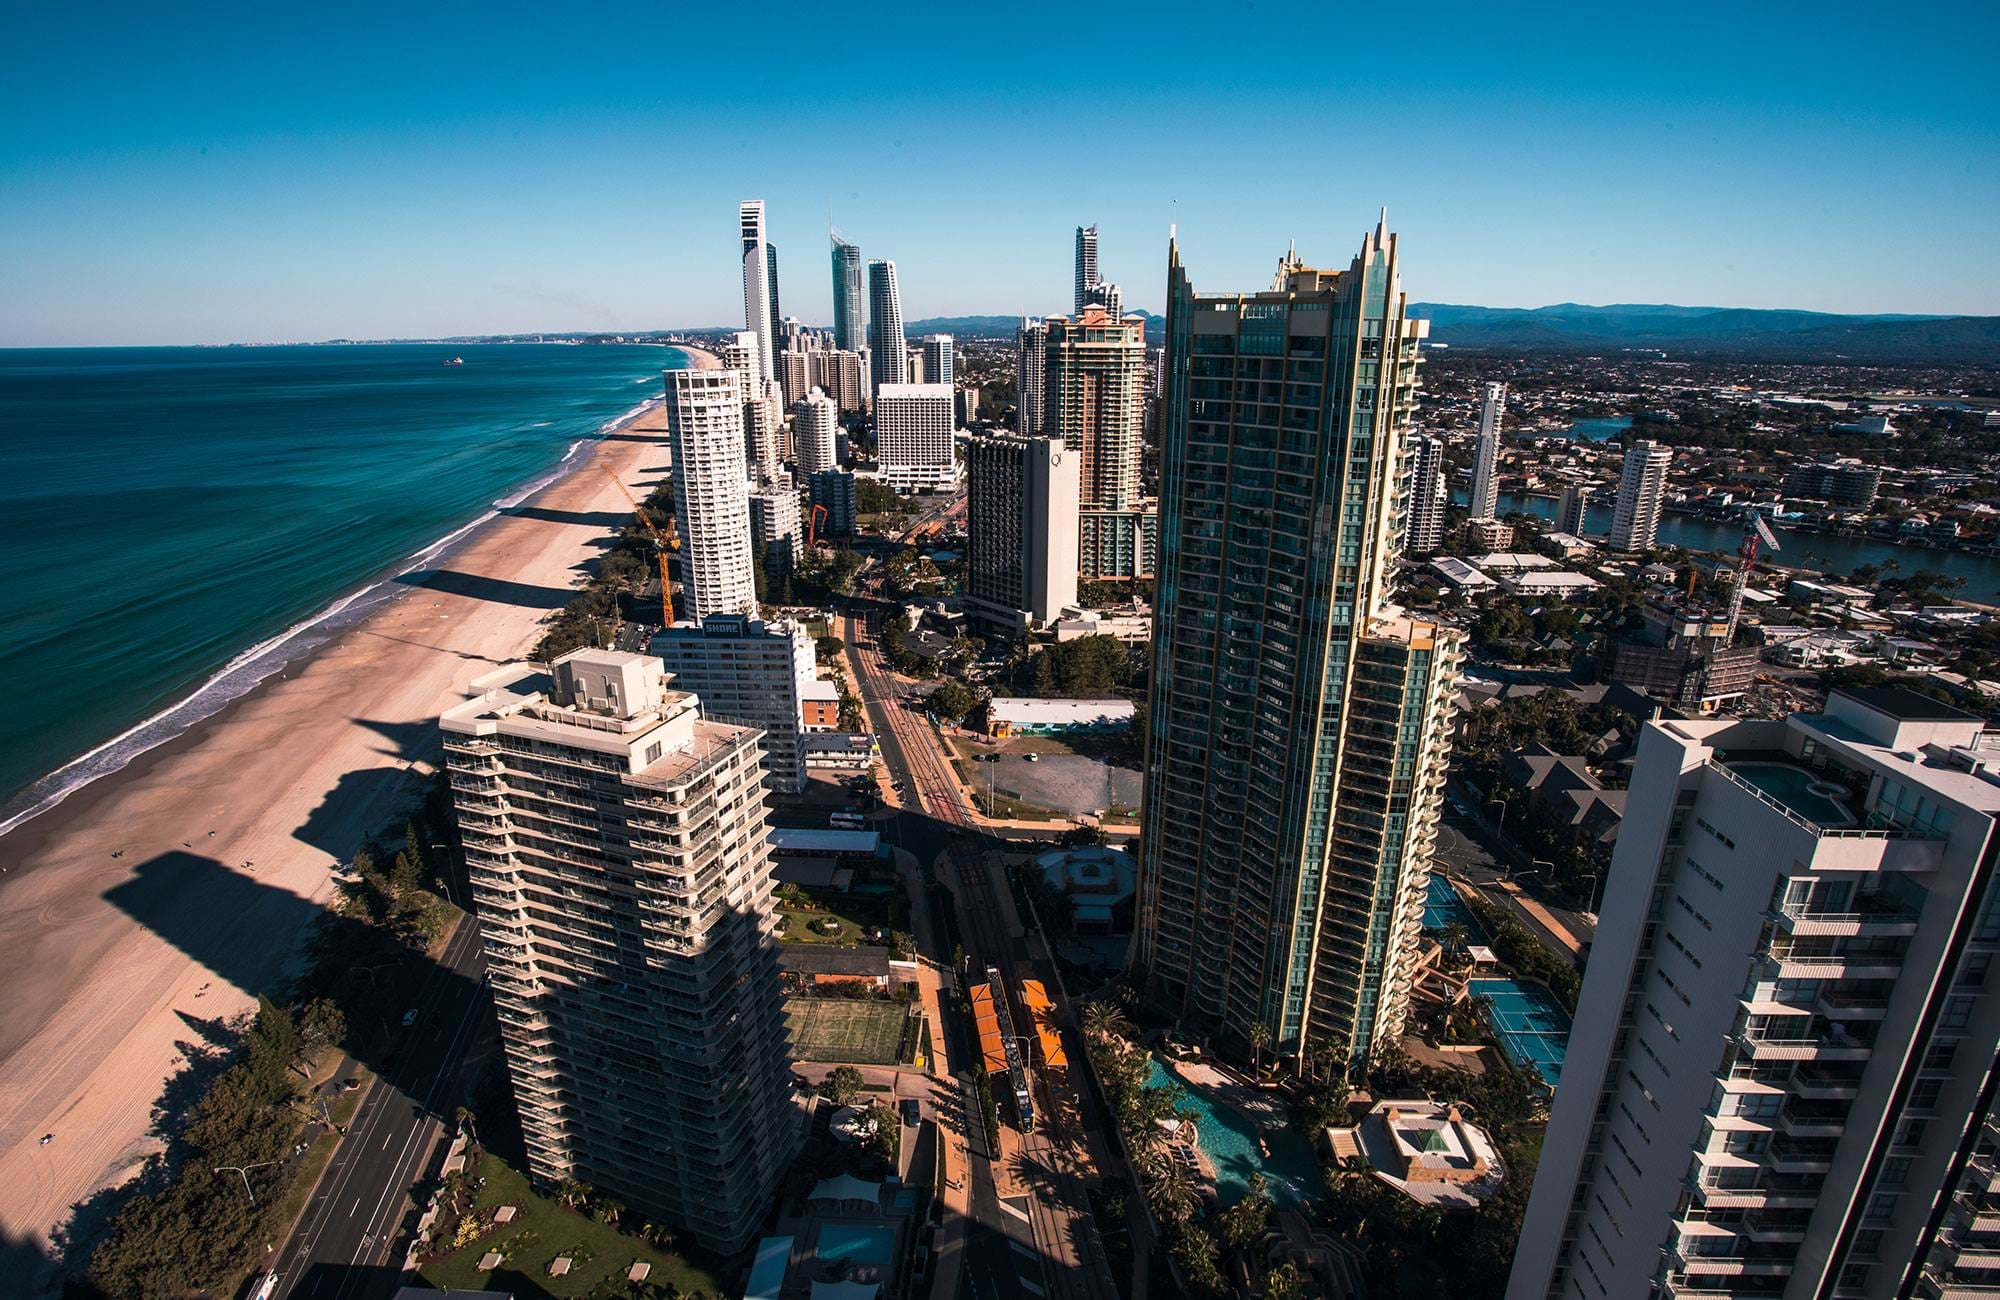 The Gold Coast seen from above